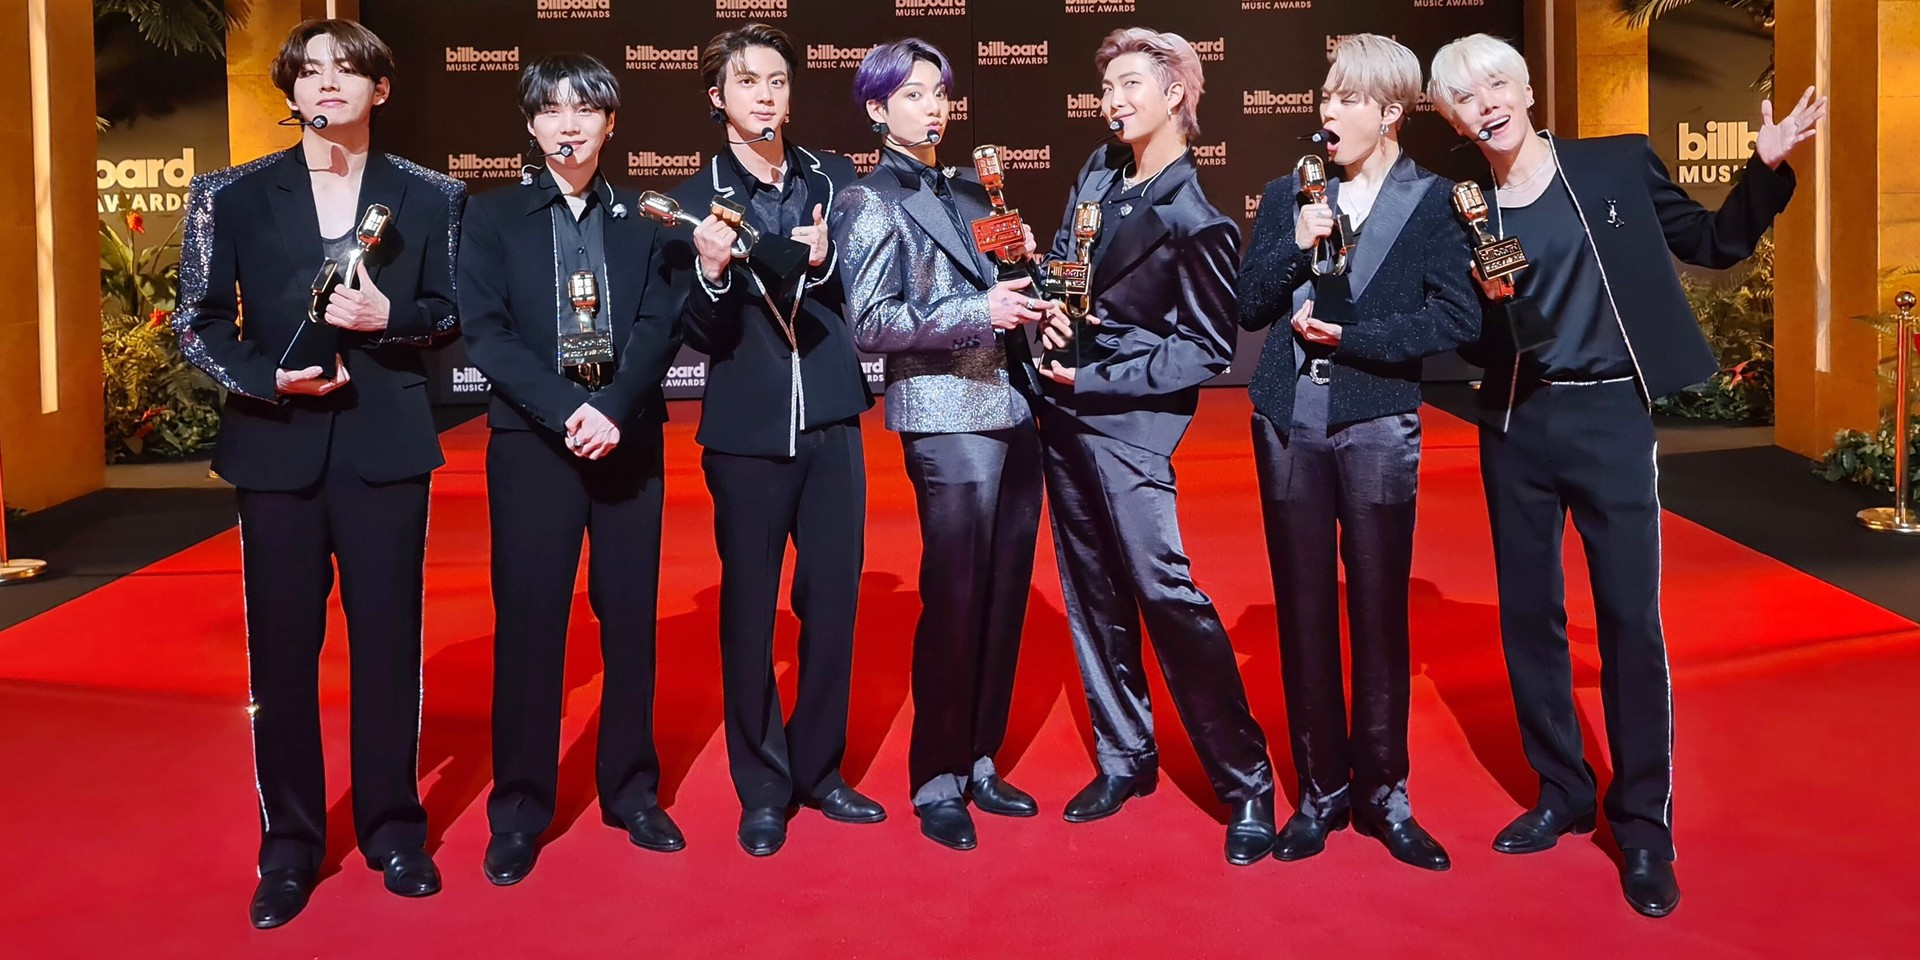 BTS win four Billboard Music Awards – Top Duo/Group, Top Song Sales, Top Social Artist, and Top Selling Song for 'Dynamite'